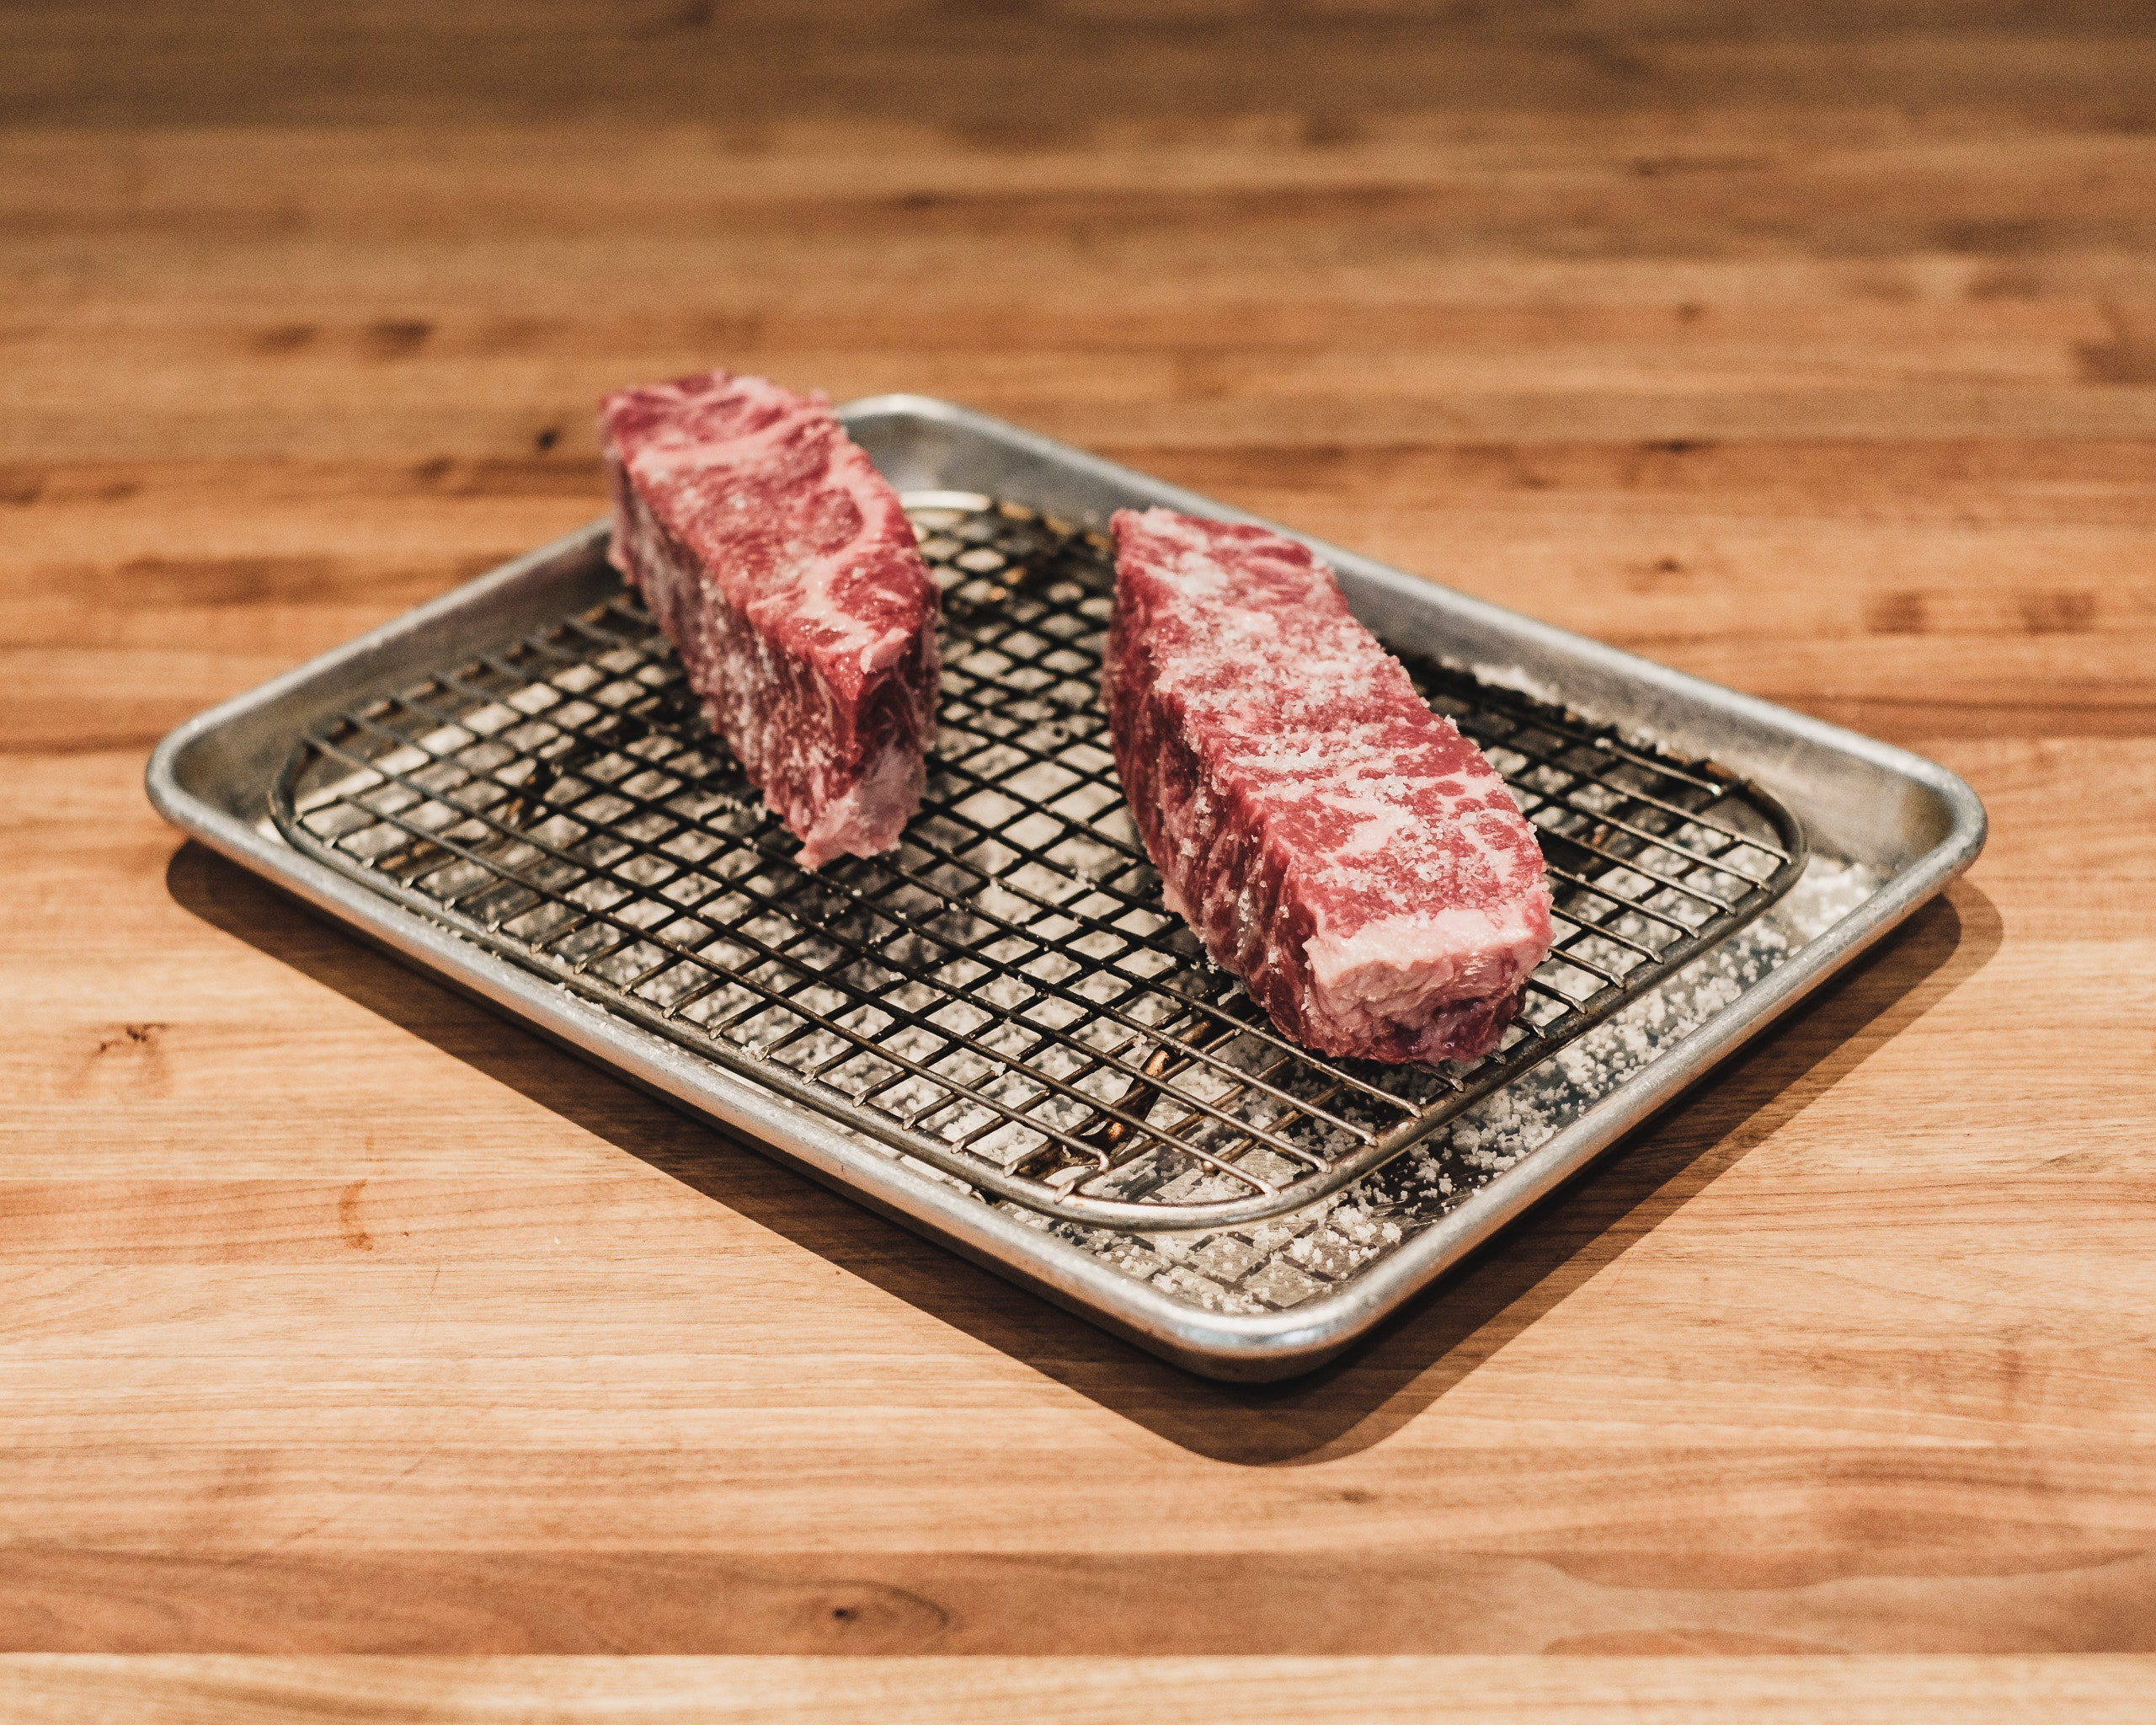 Japanese scientists work up an appetite for lab-grown Wagyu beef